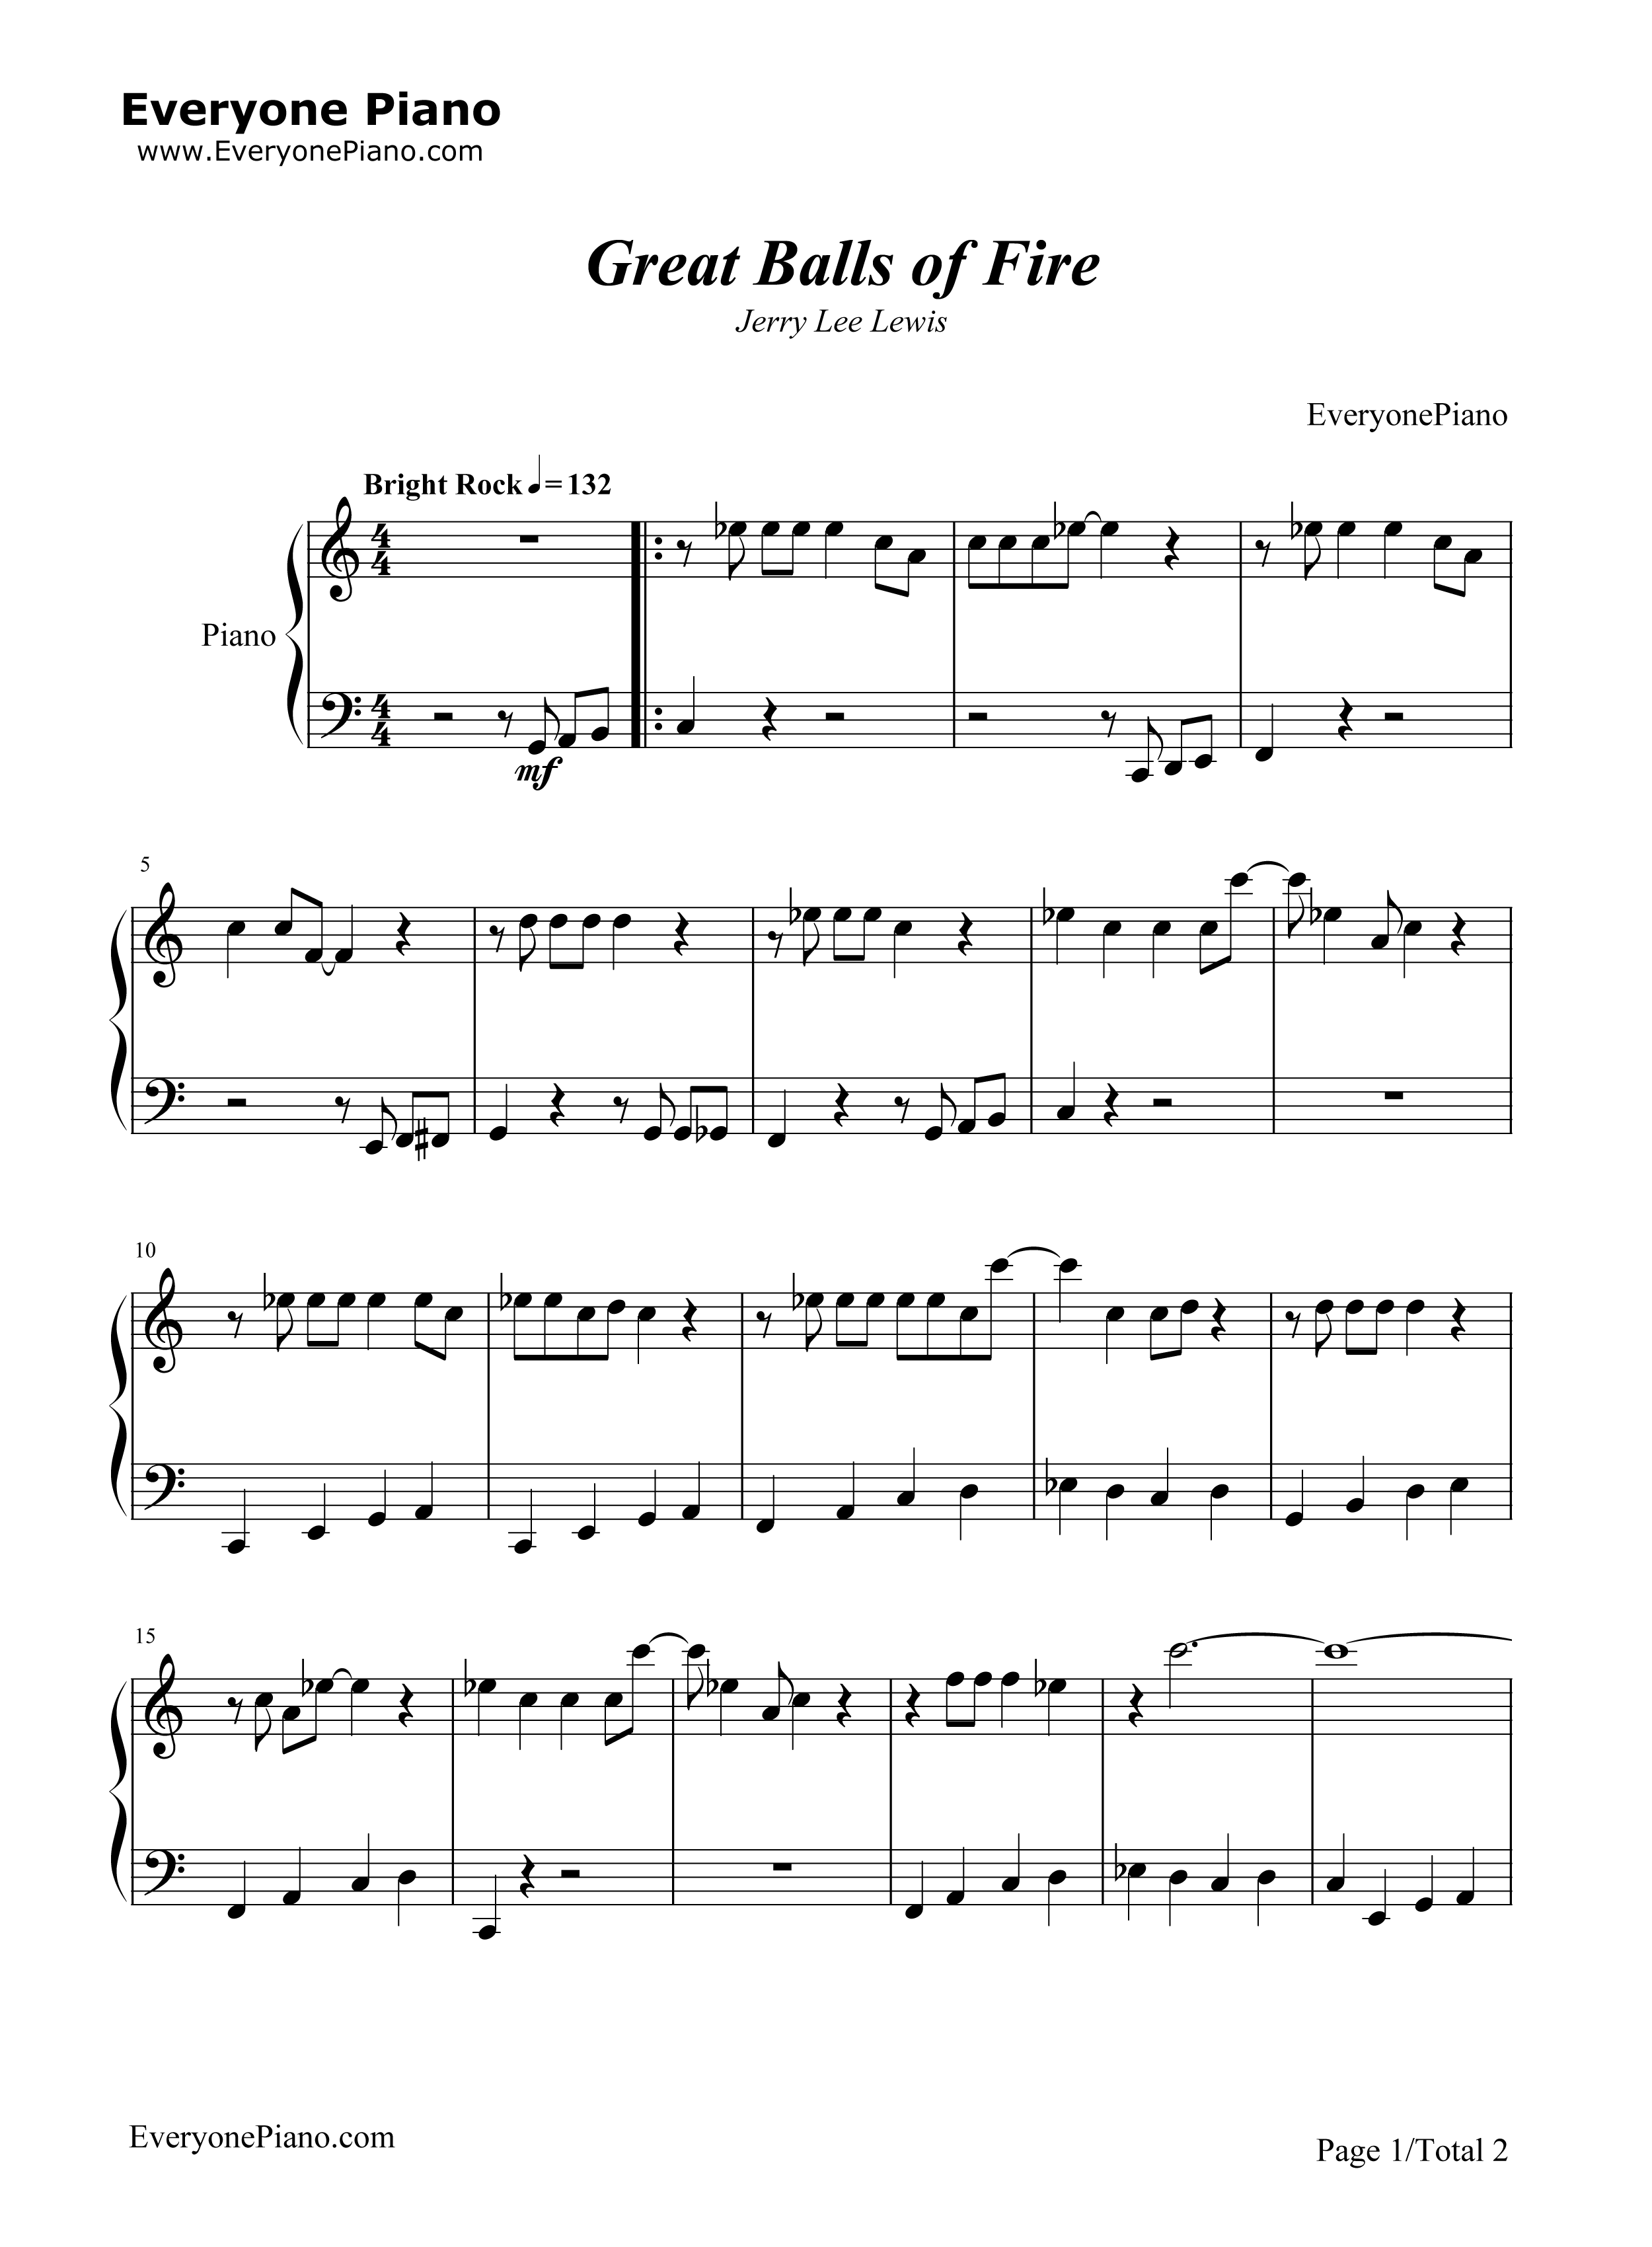 Great Balls of Fire-Jerry Lee Lewis Stave Preview 1-Free Piano Sheet Music u0026 Piano Chords